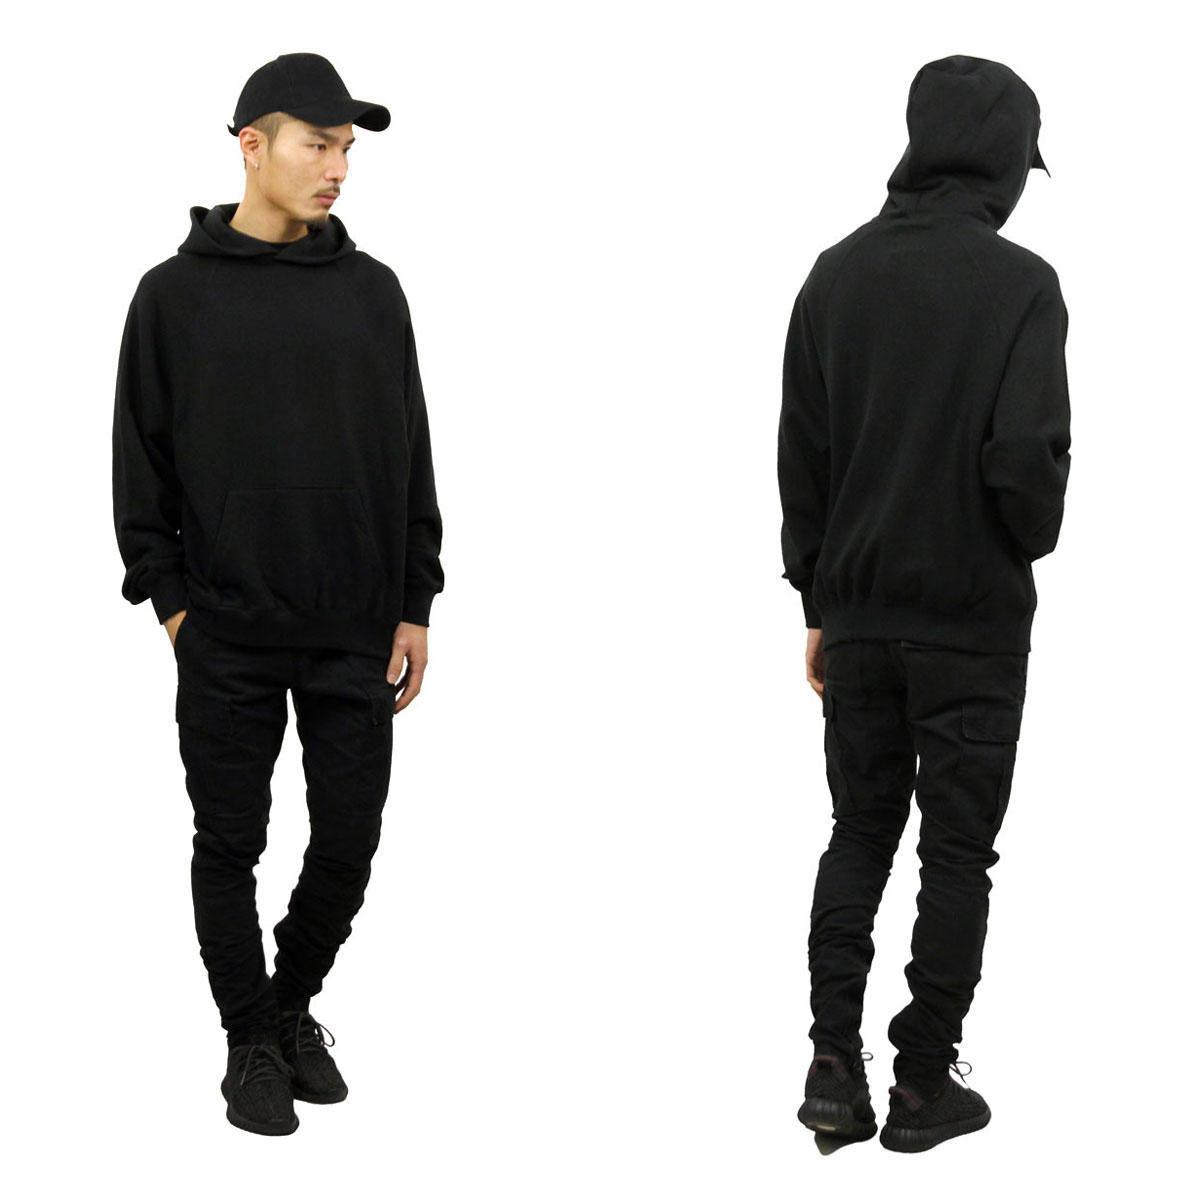 フィアオブゴッド パーカー メンズ 正規品 FEAR OF GOD プルオーバーパーカー  FOG - FEAR OF GOD ESSENTIALS PULLOVER HOODIE BLACK AA5B B1C C1D D5E E13F